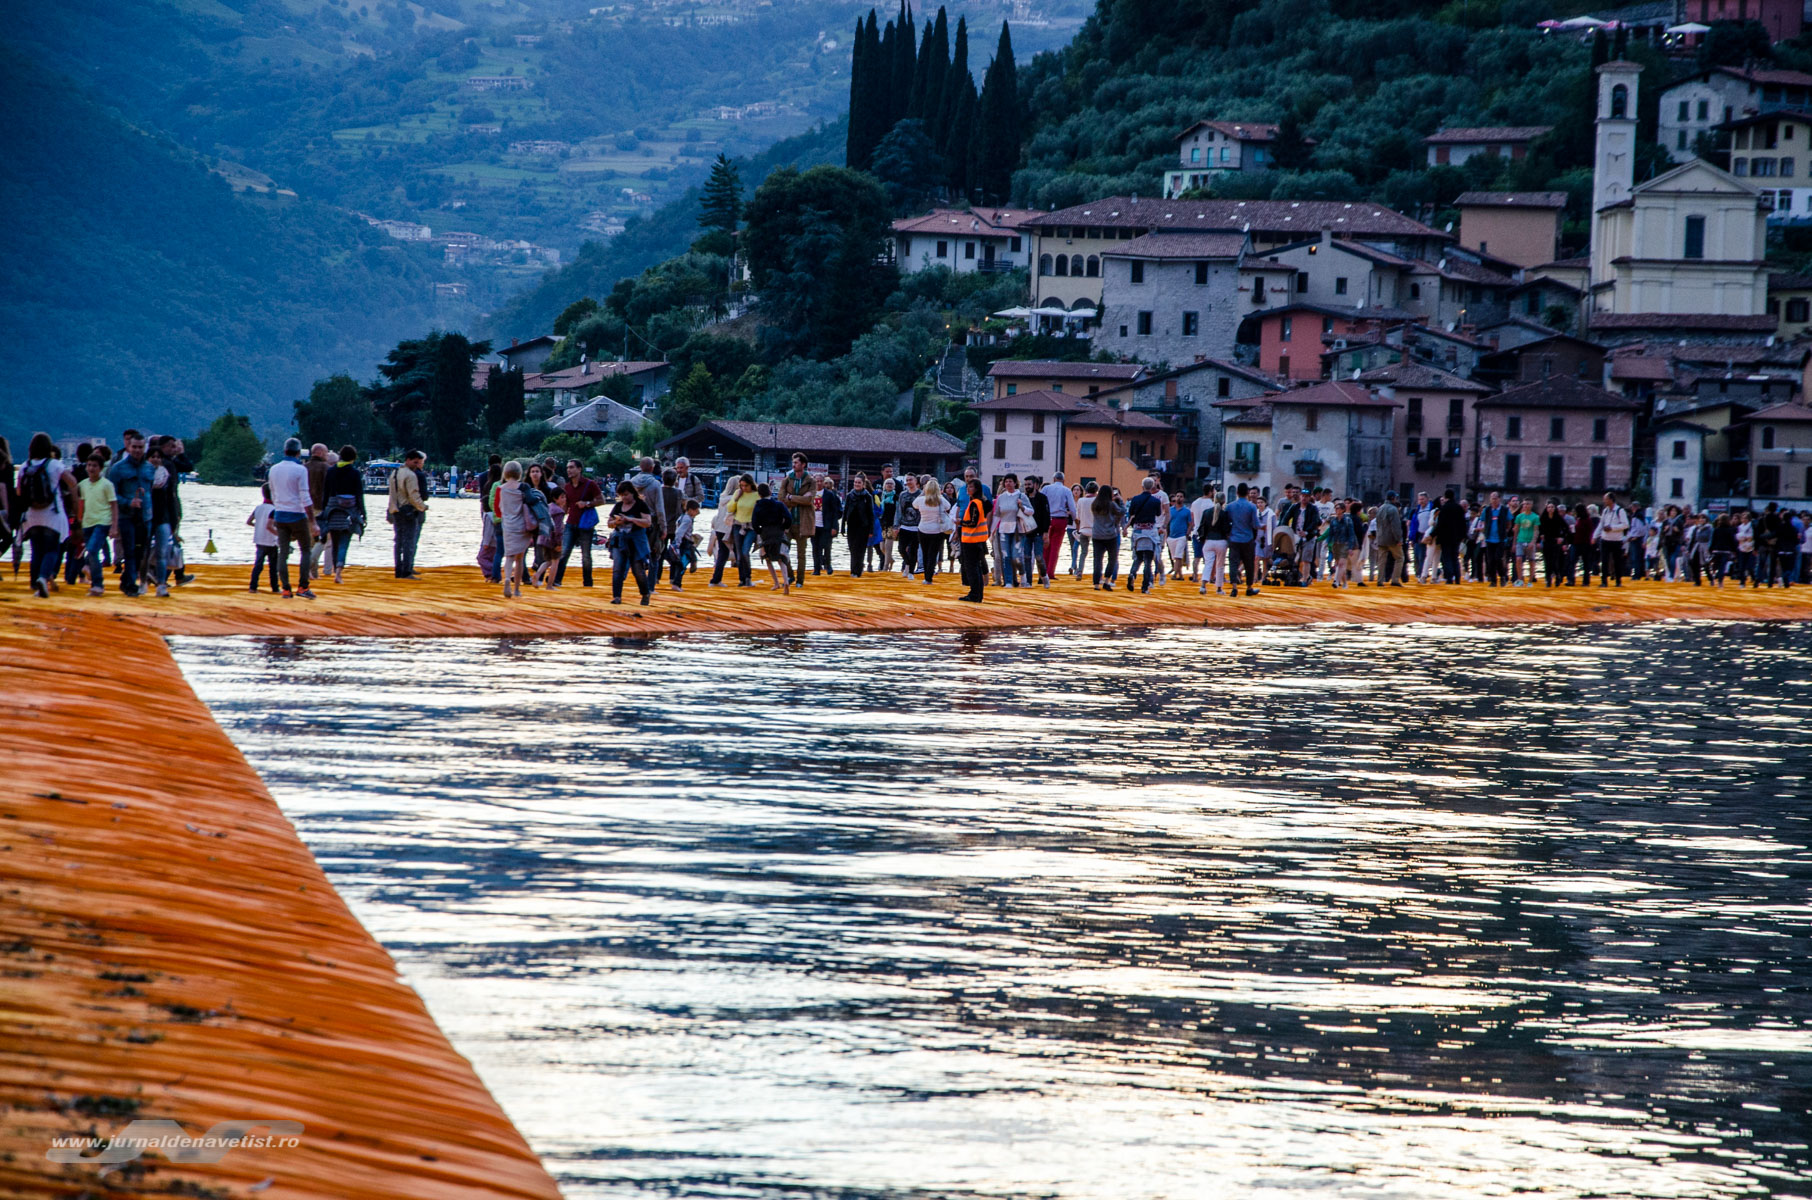 The Floating Piers 7849